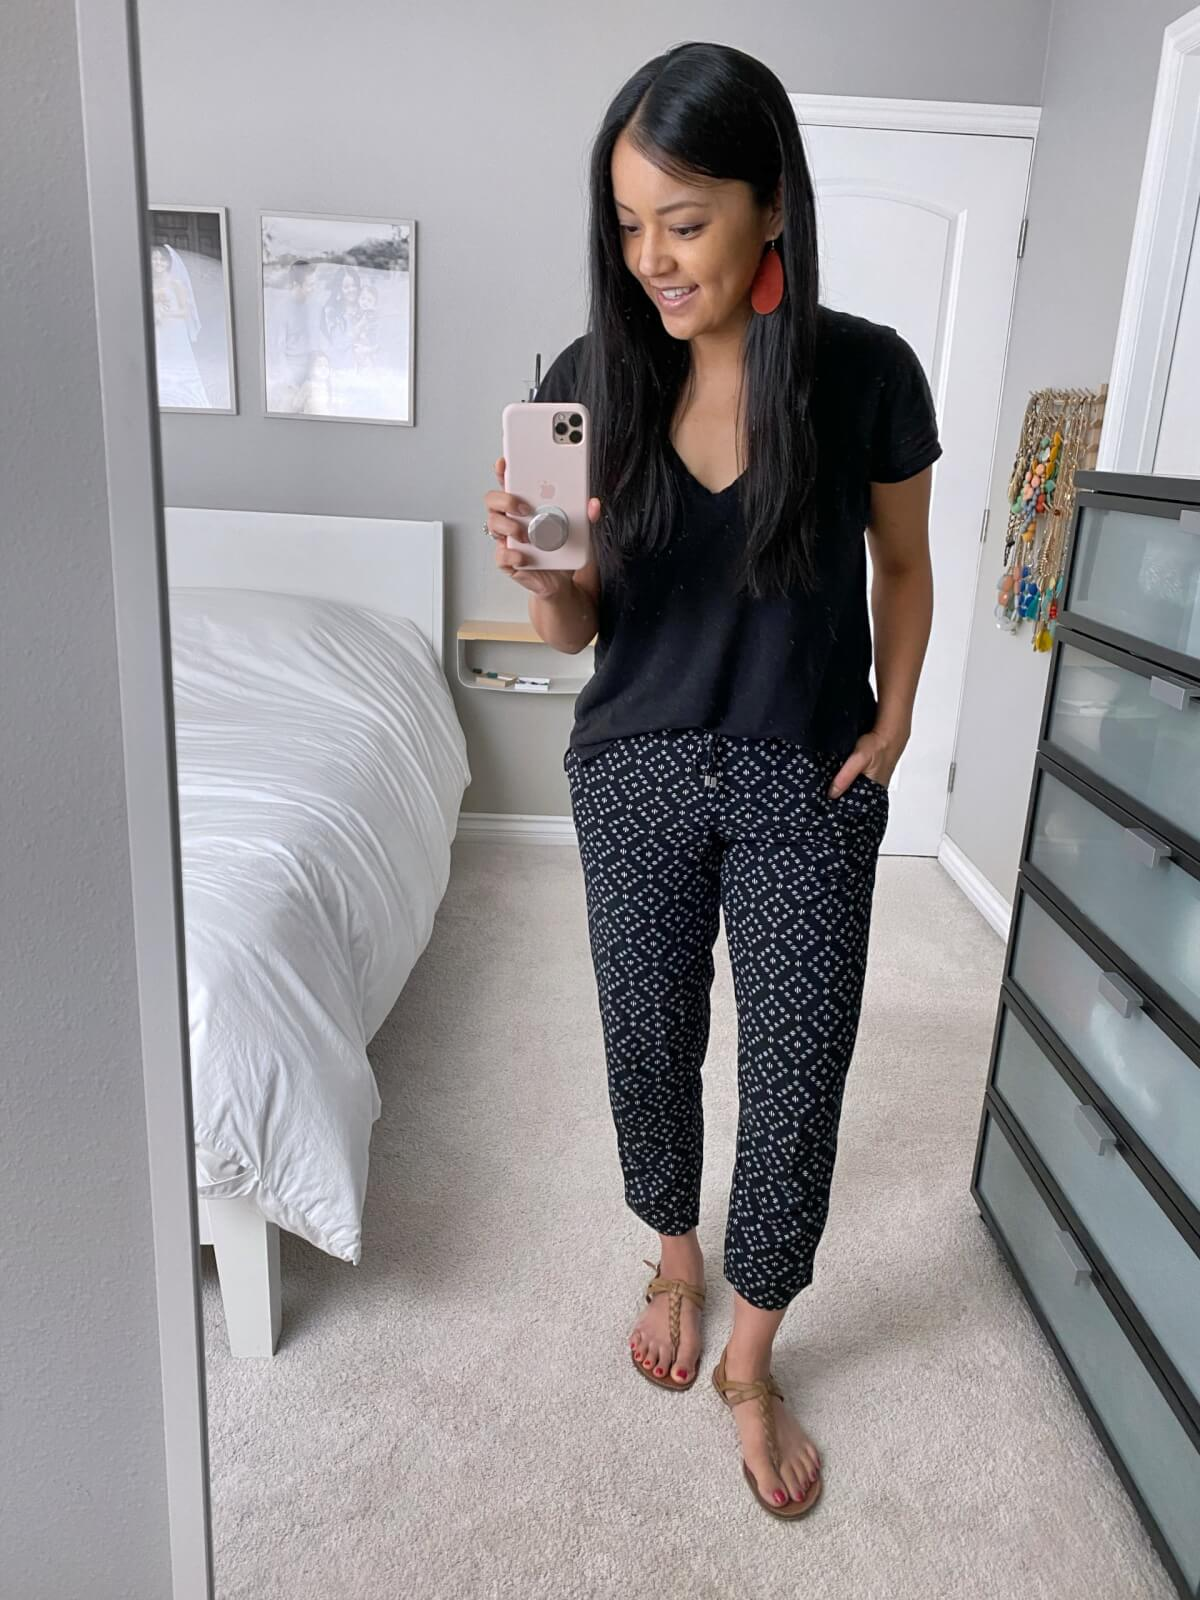 Summer Pants Casual Outfit: black tee + light geometric print pants + red earrings + nude sandals